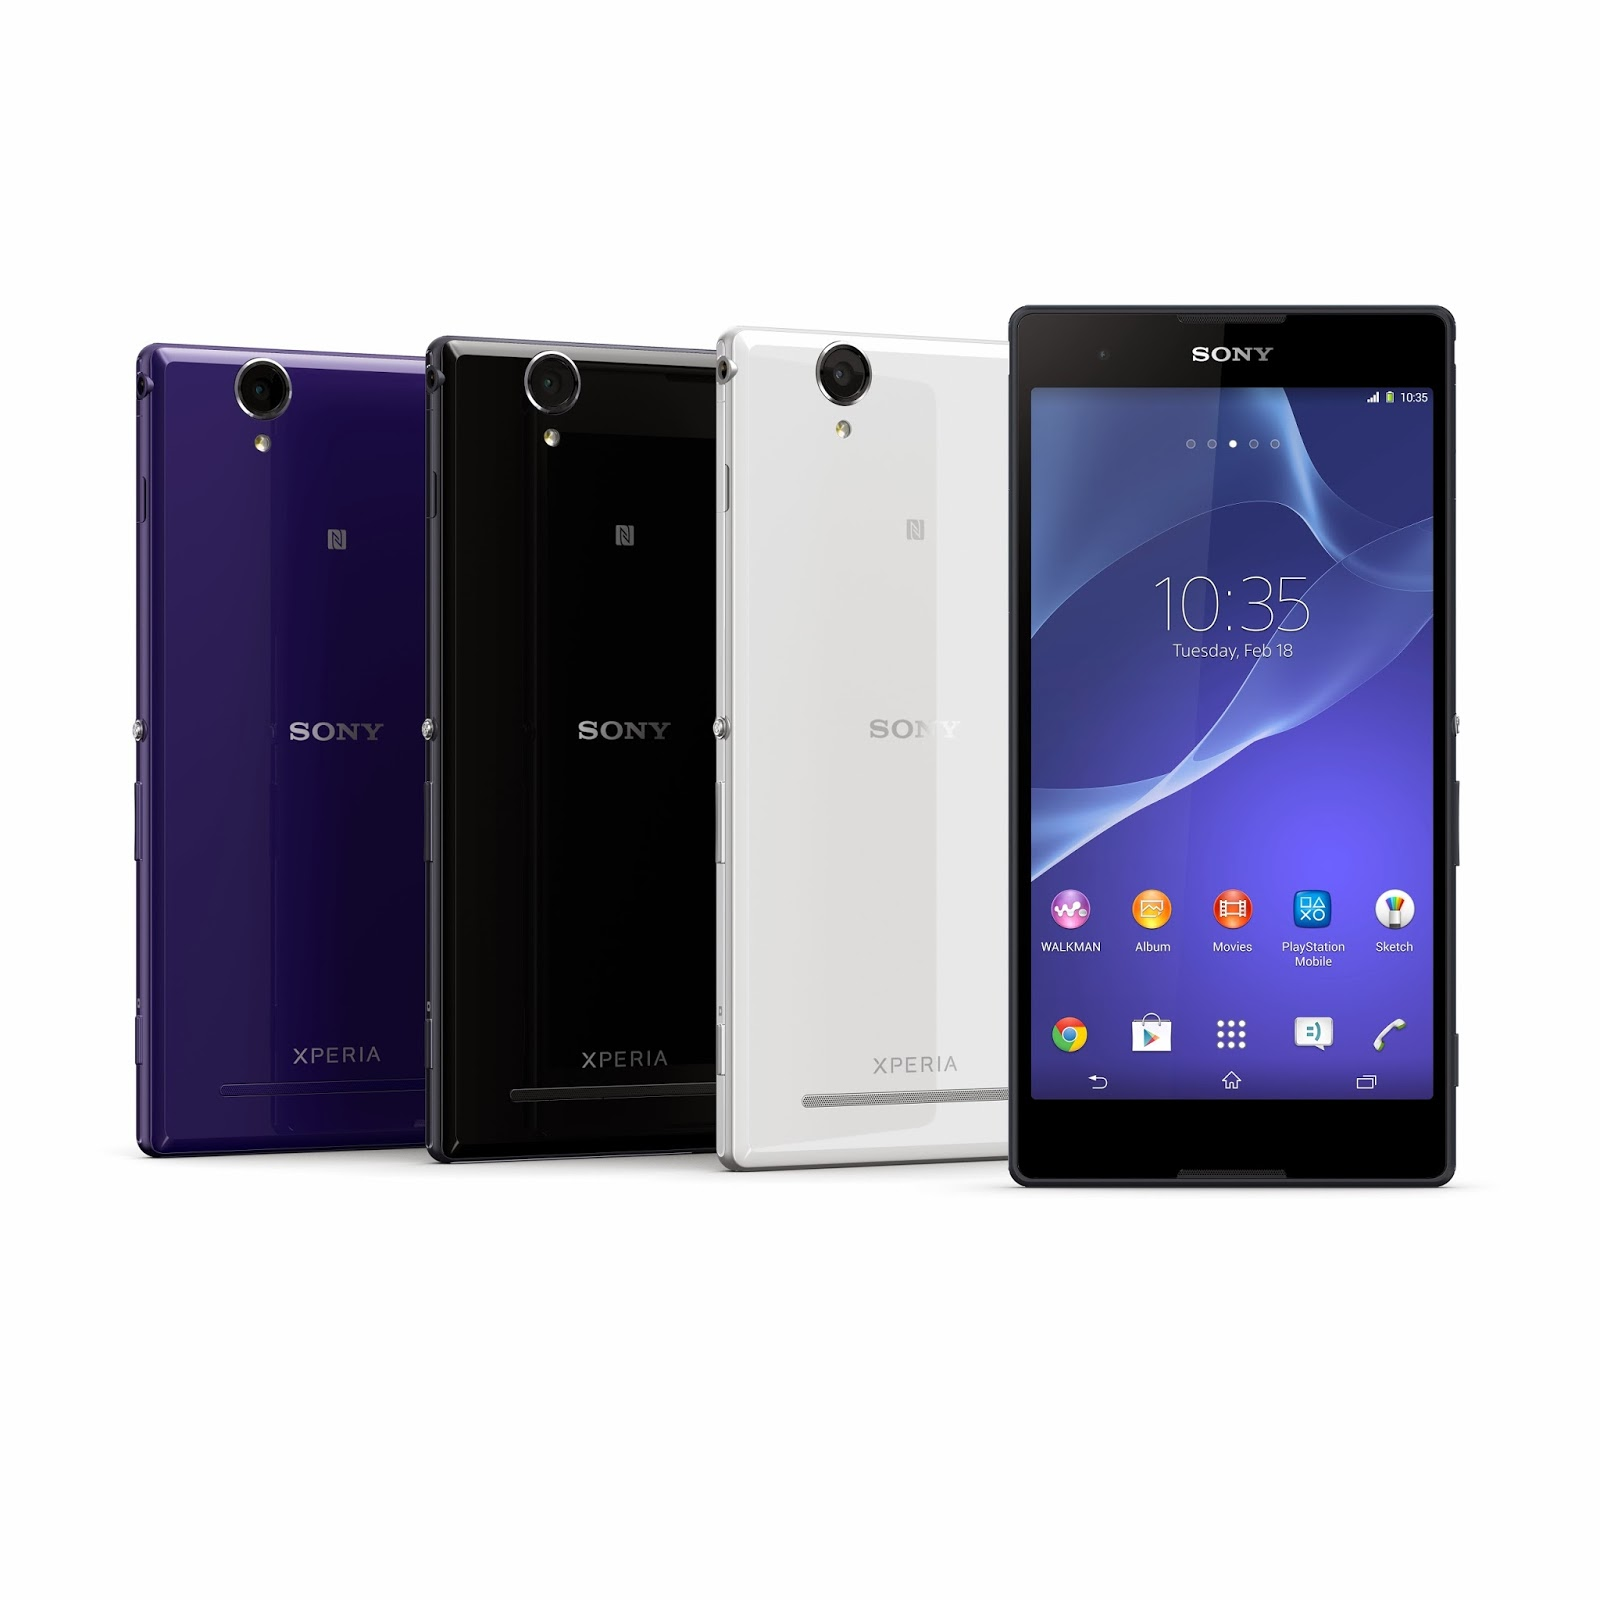 called as xperia t2 ultra dual the specifications of t2 ultra dual is